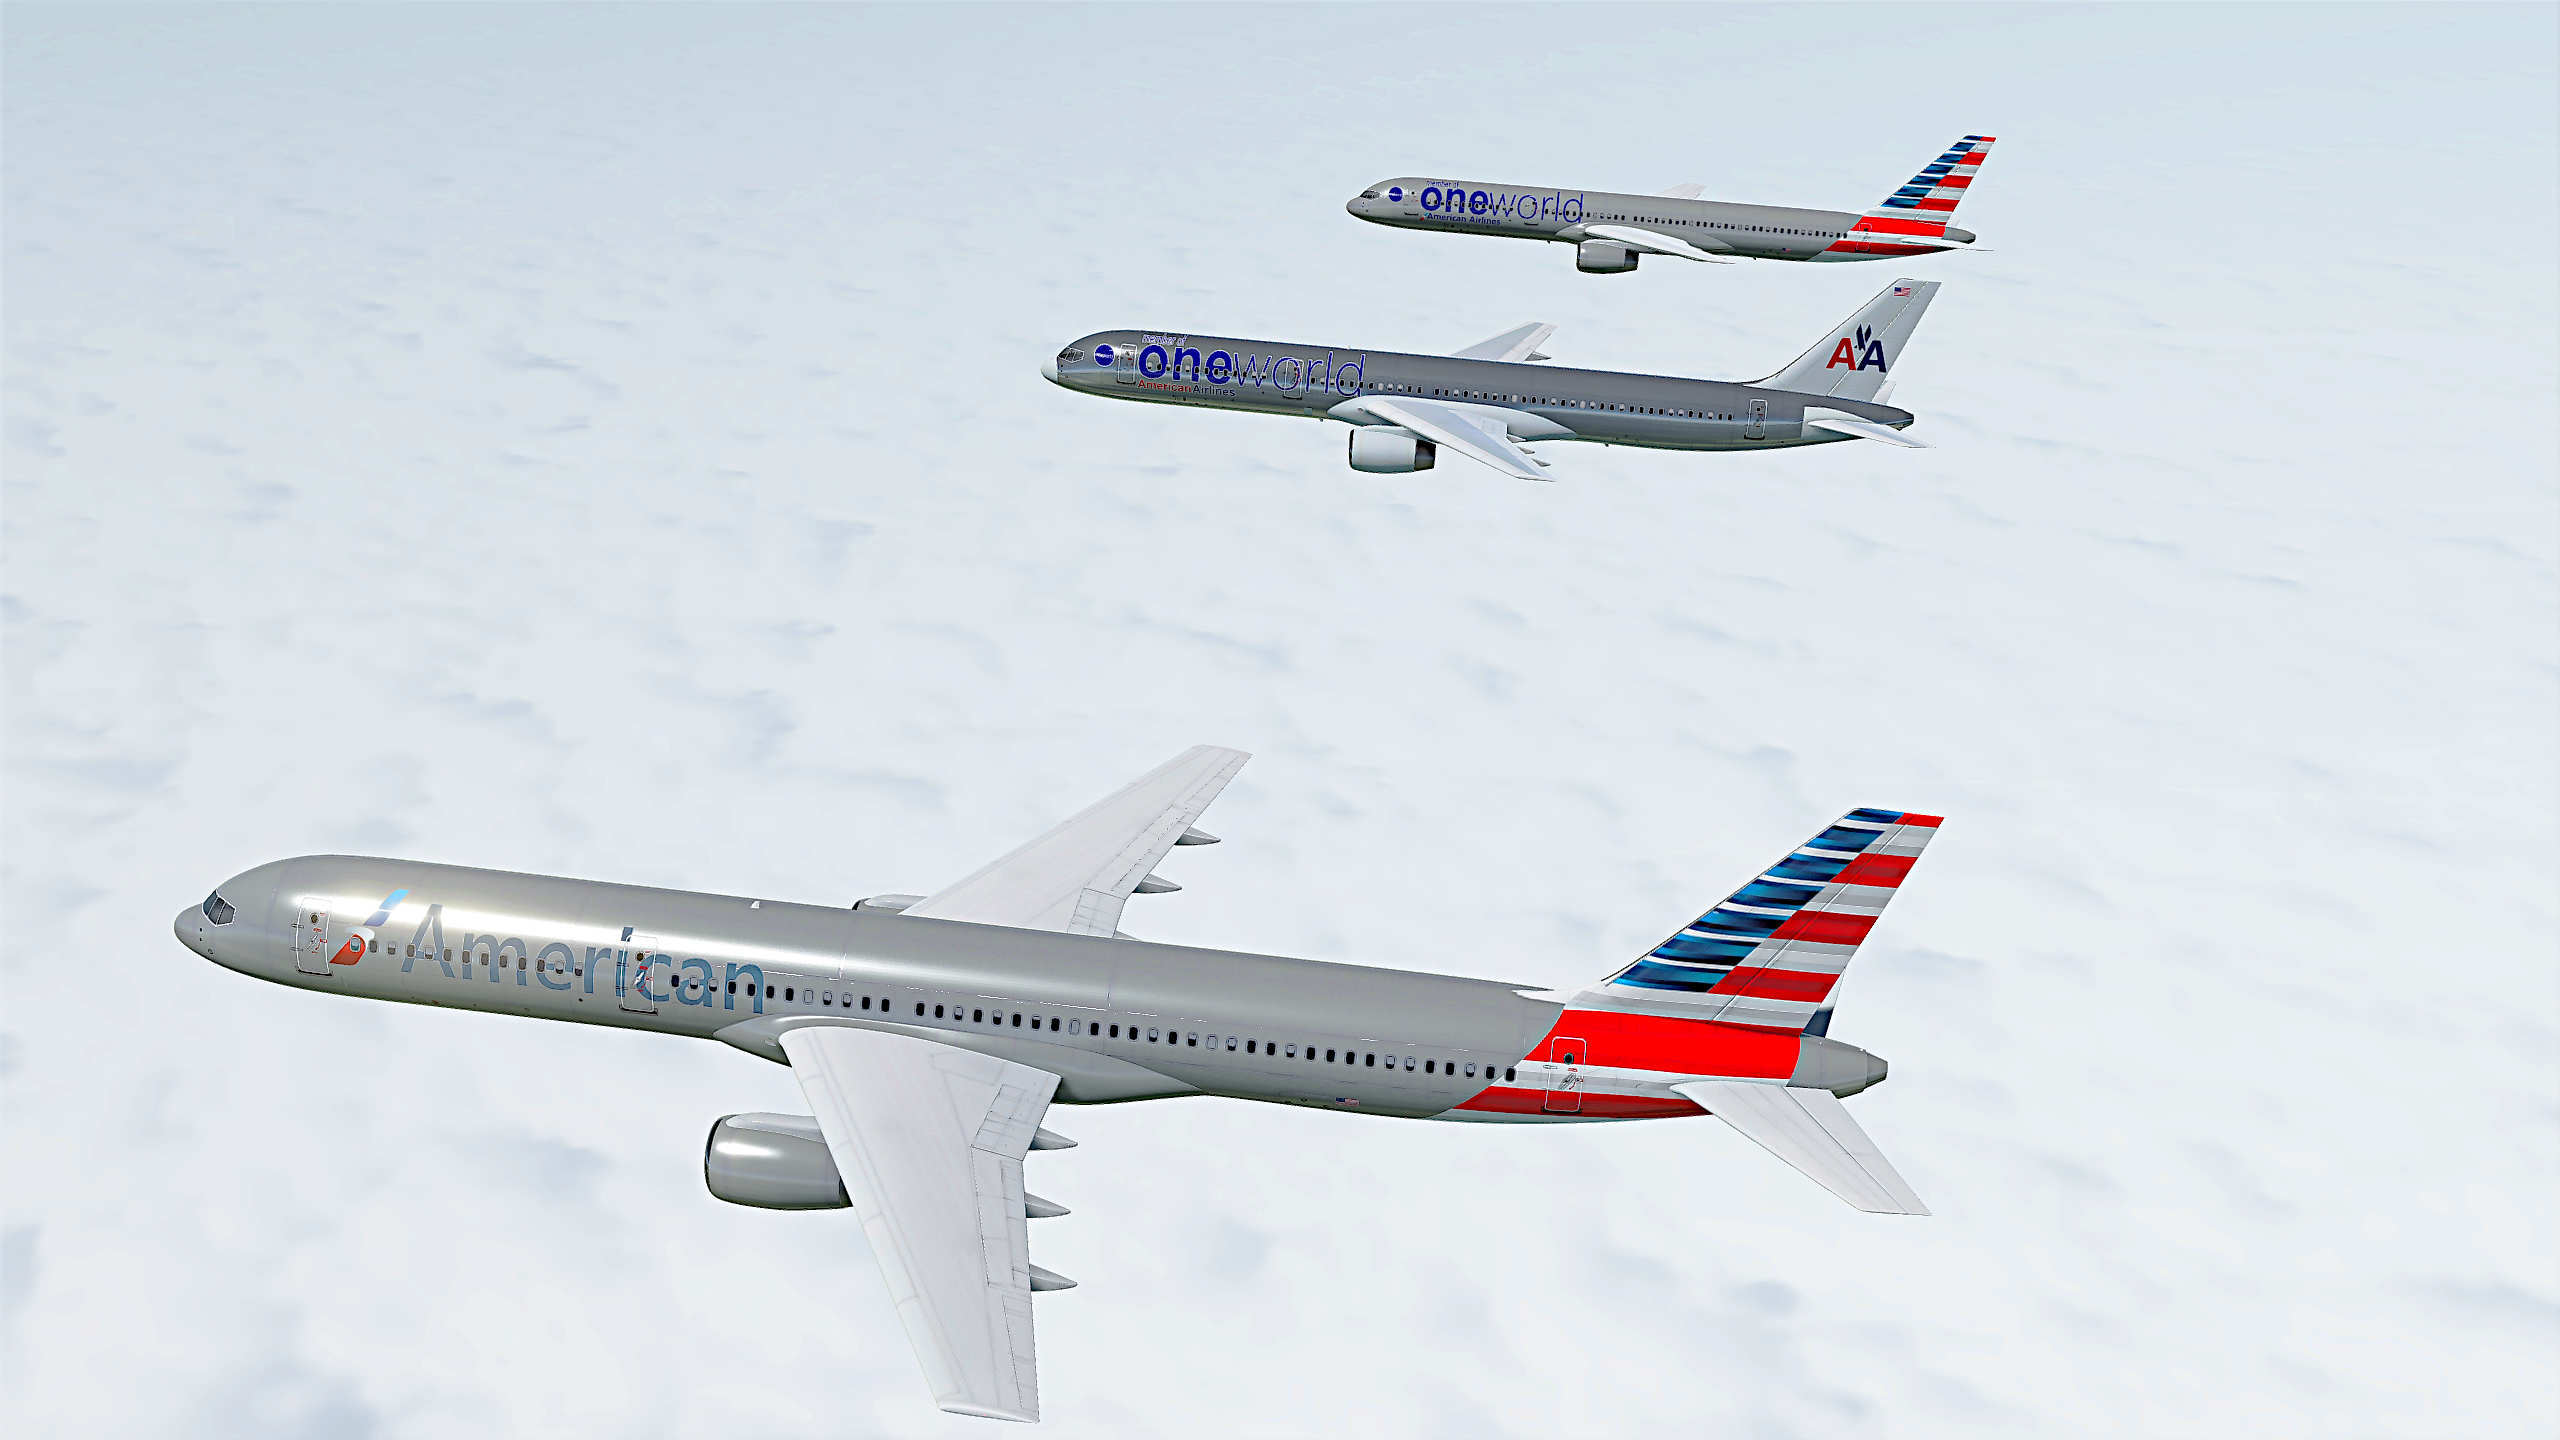 American Airlines 757-200 (New Livery)  Skin pack  for Civilian Aircraft Mod.